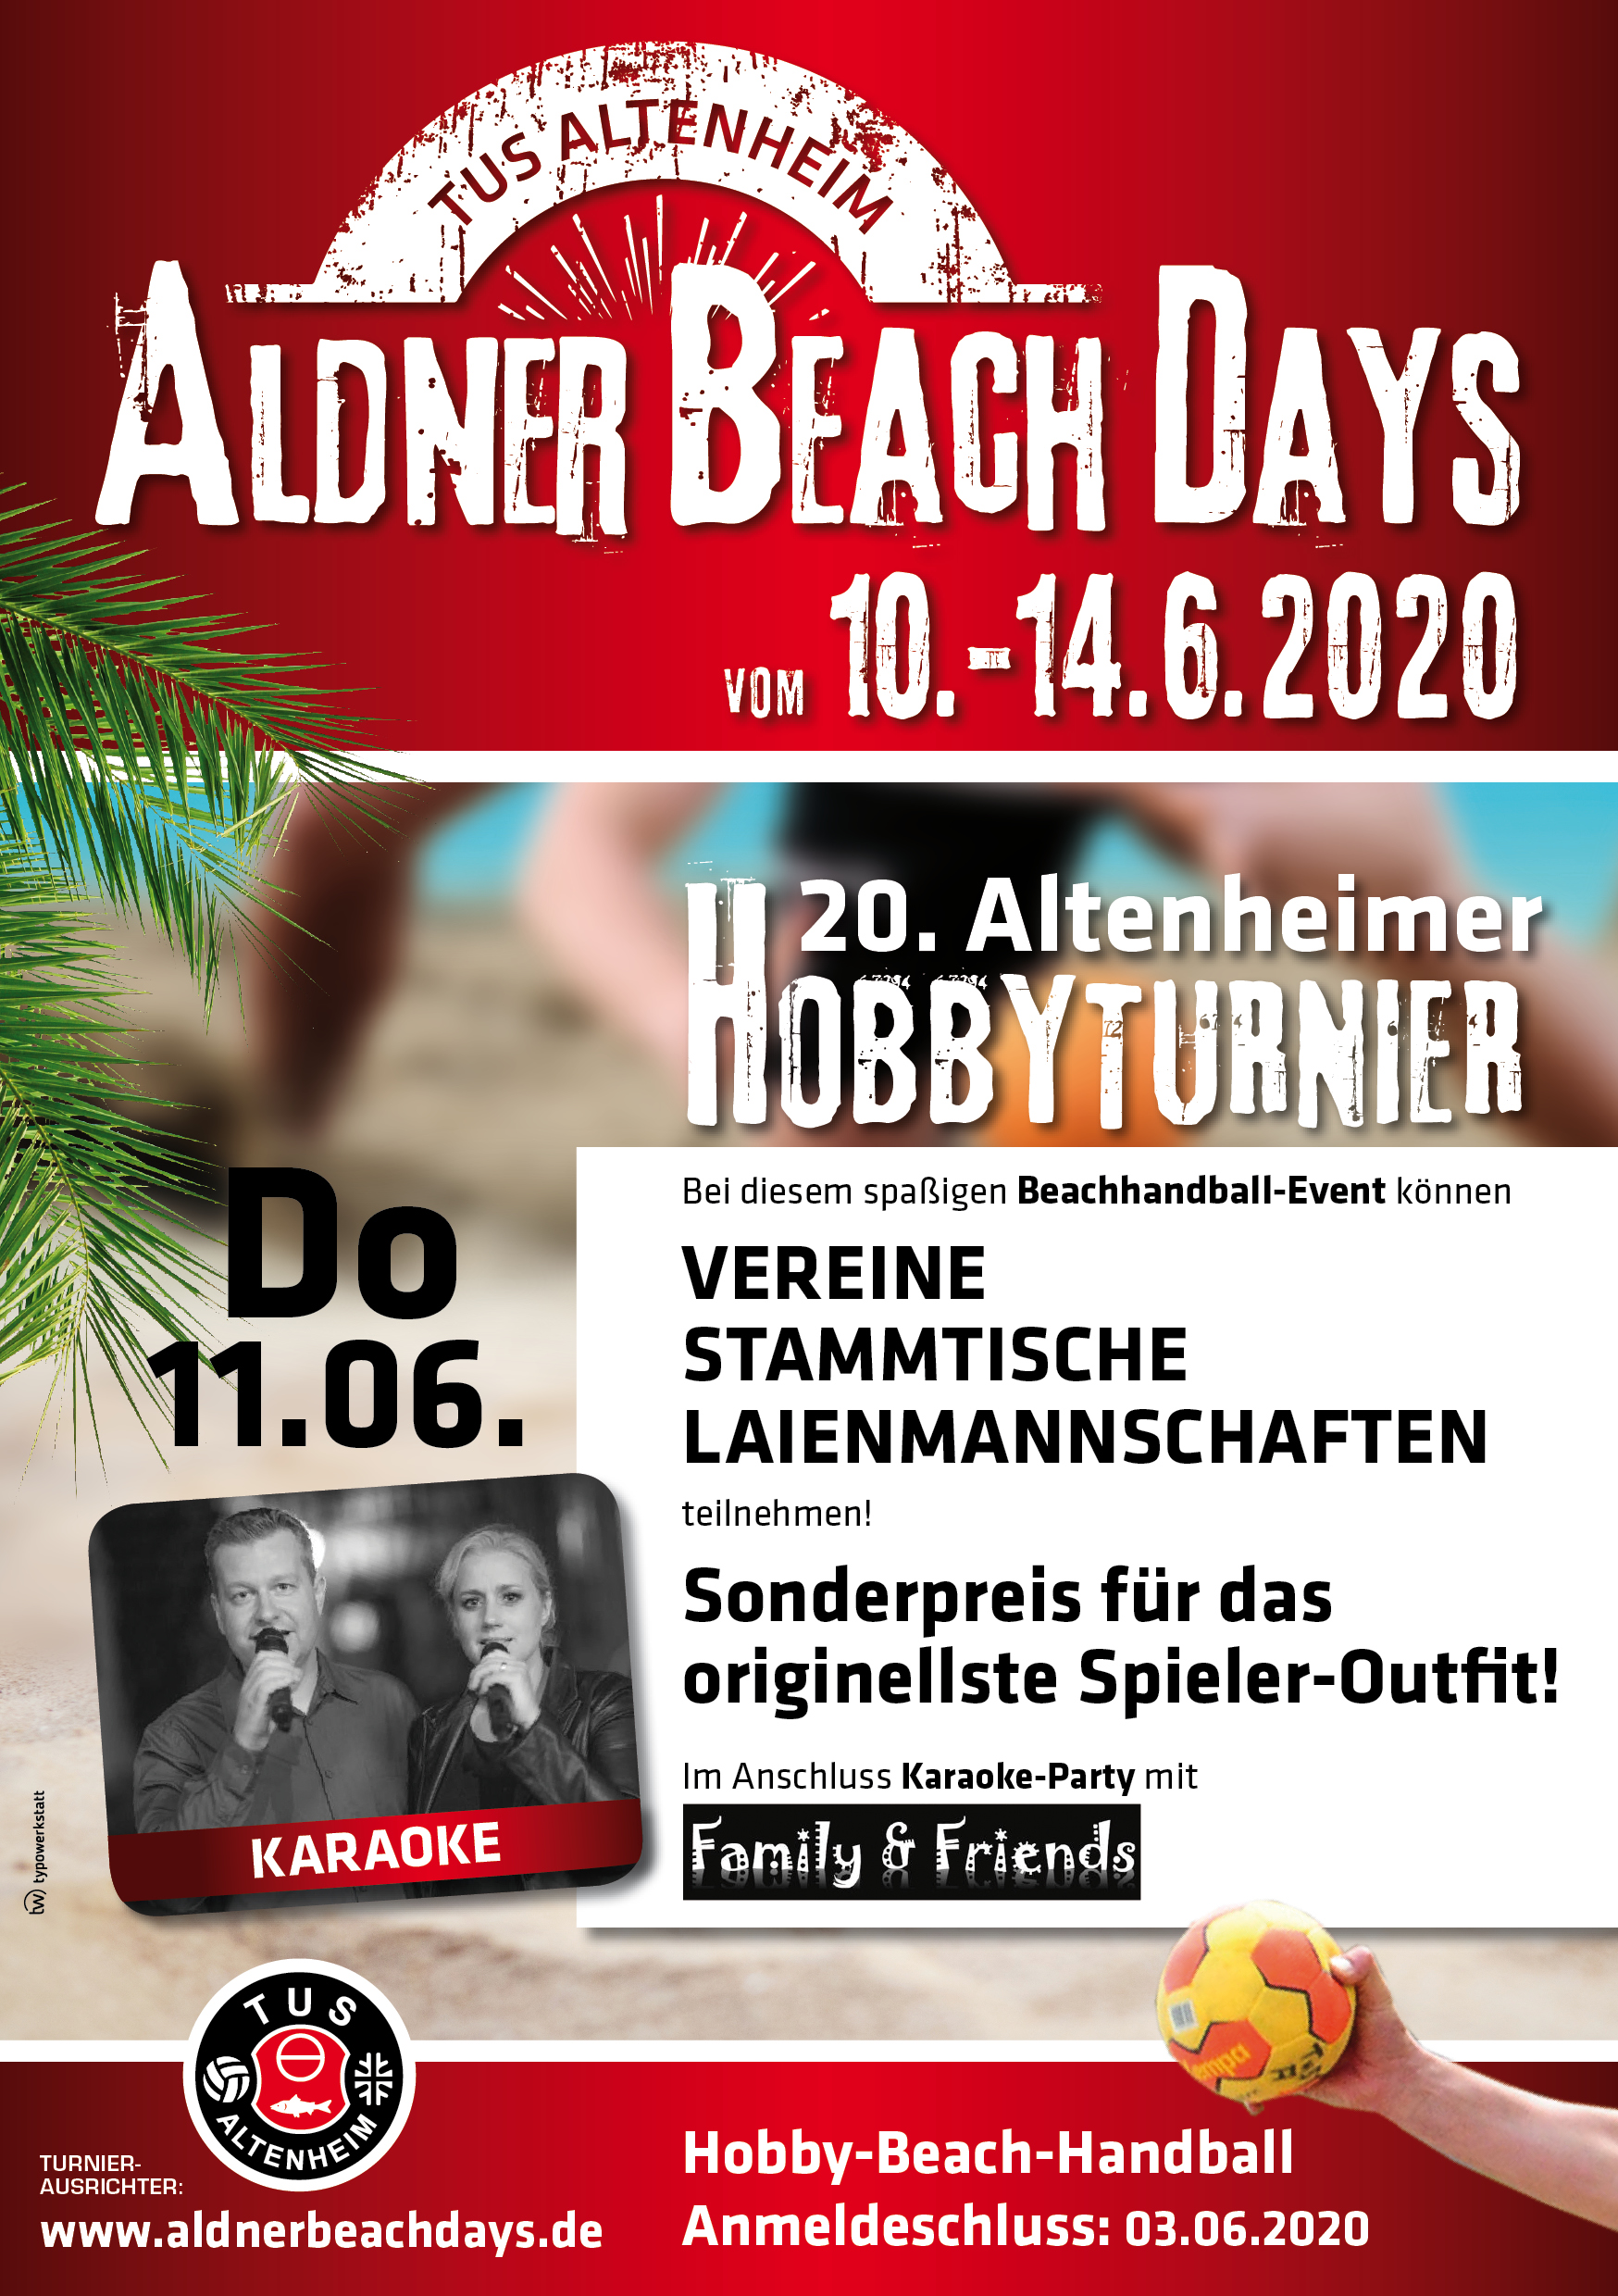 TUS_Beach_Flyer-2020-Do-A5_print1